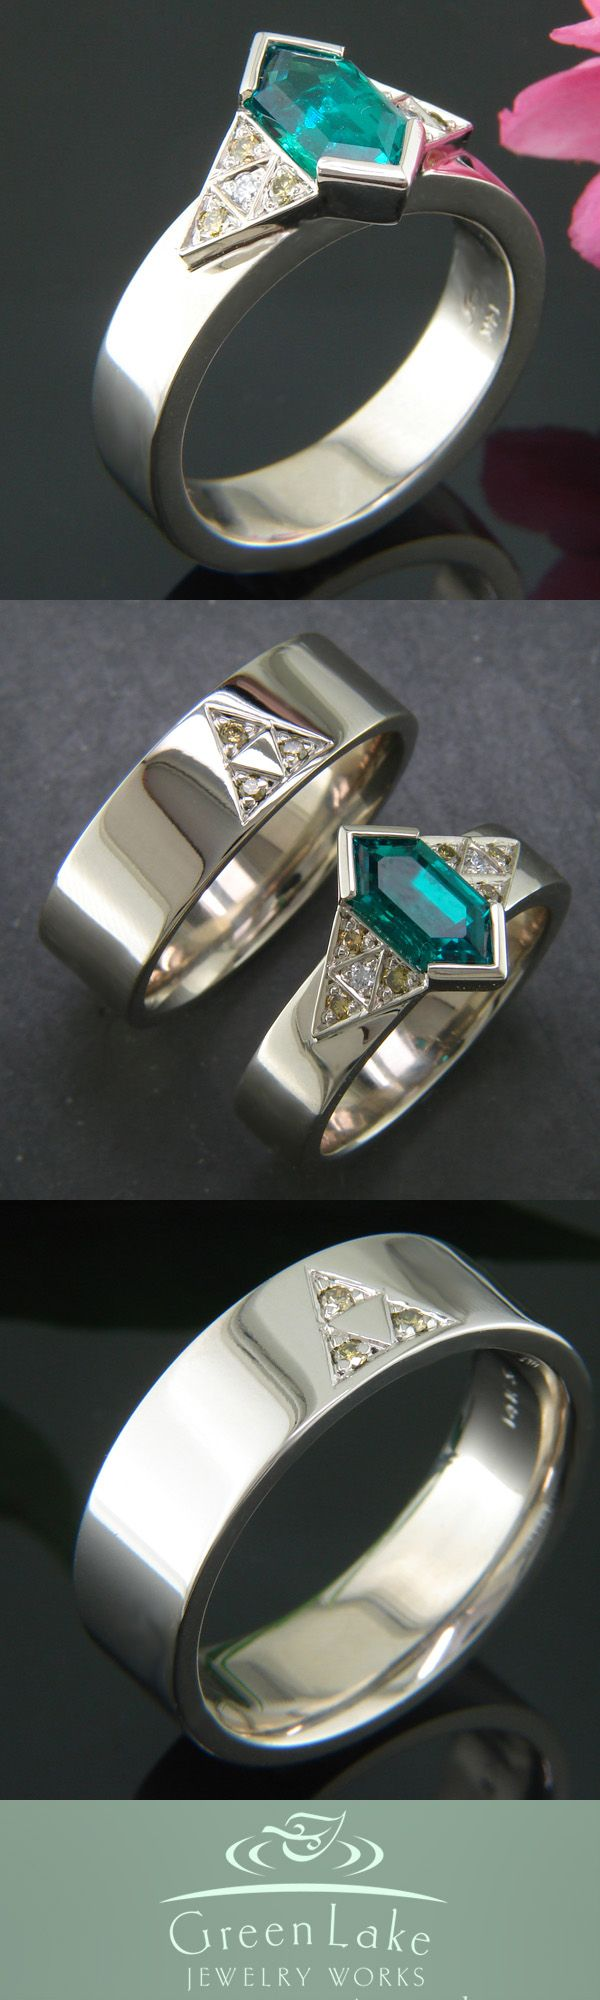 Custom White Gold Wedding Rings With The Triforce: Hers Features A Custom '